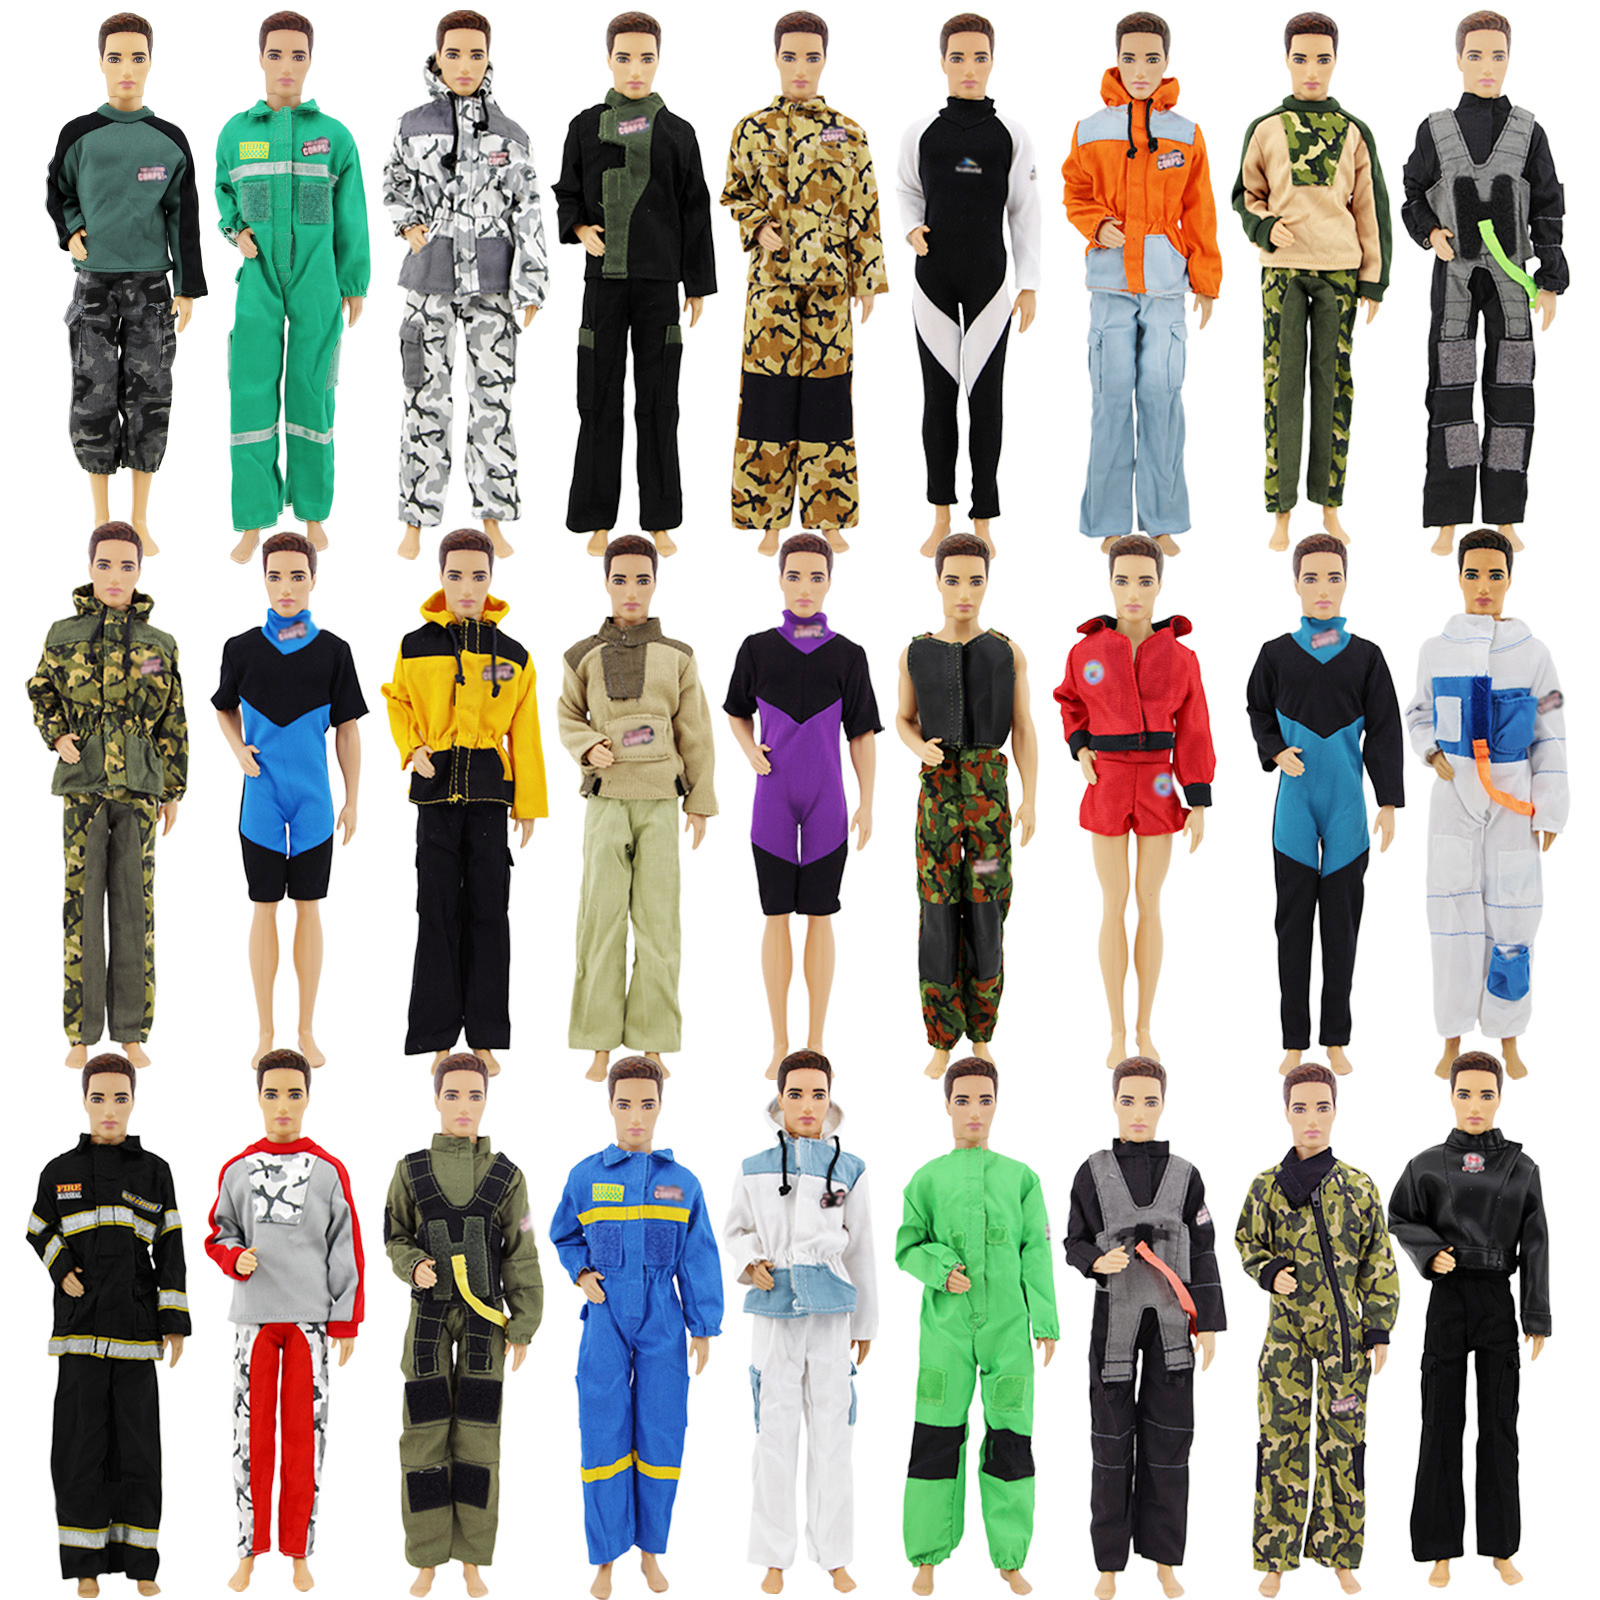 Dolls & Stuffed Toys 3 Set Random Outfits Daily Wear Pants Trousers Long Sleeves Coat Jacket Men Winter Accessories Clothes For Barbie Ken Doll Toy Dolls Accessories